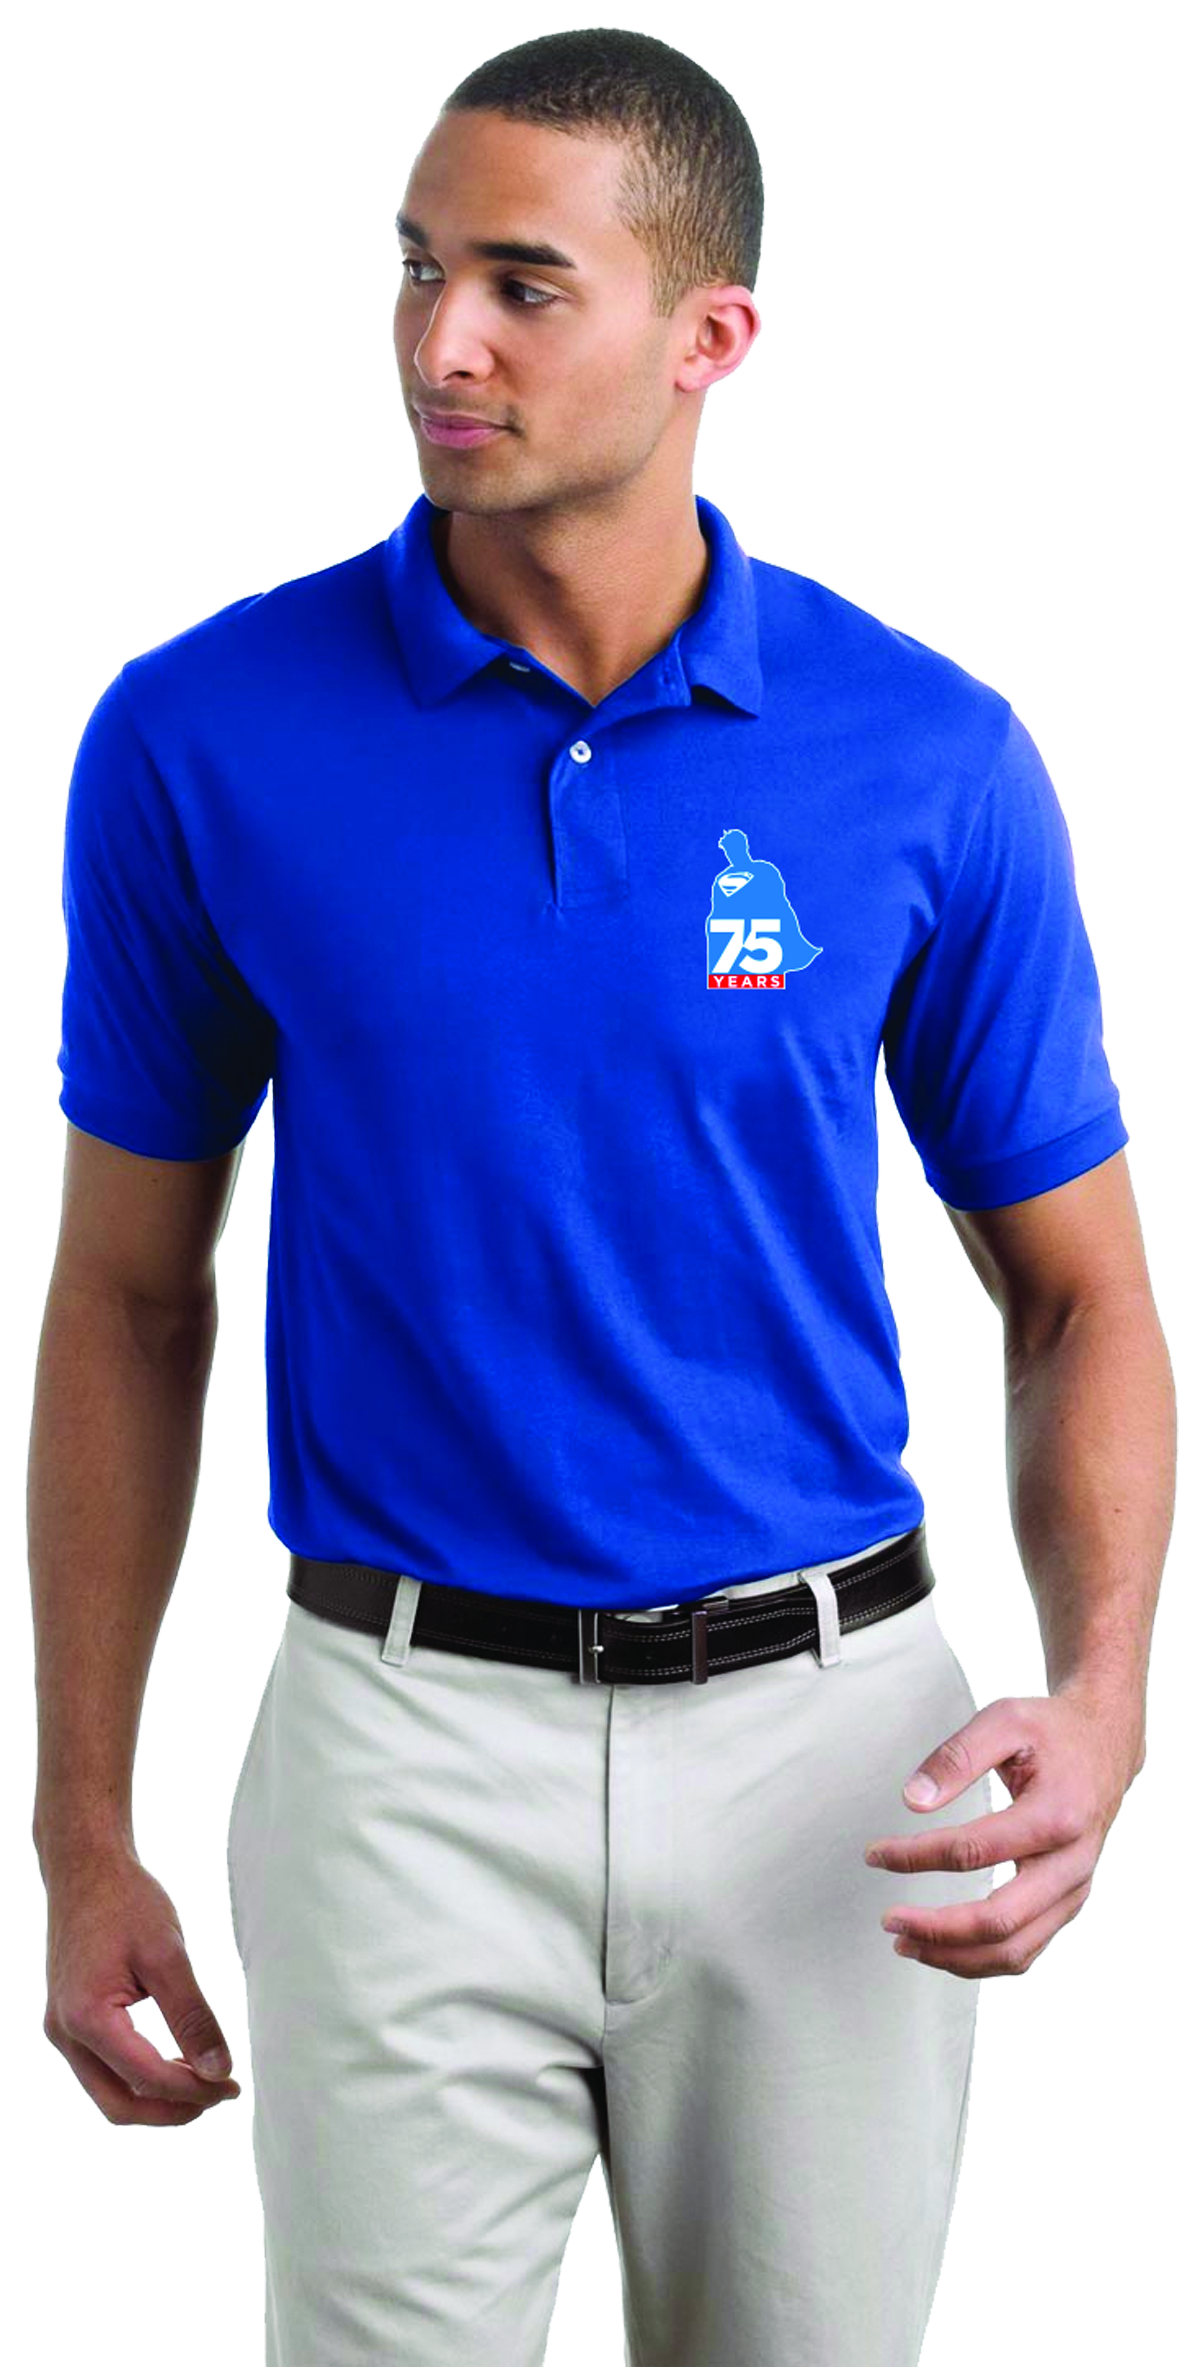 SUPERMAN 75TH ANNIVERSARY POLO T/S LG